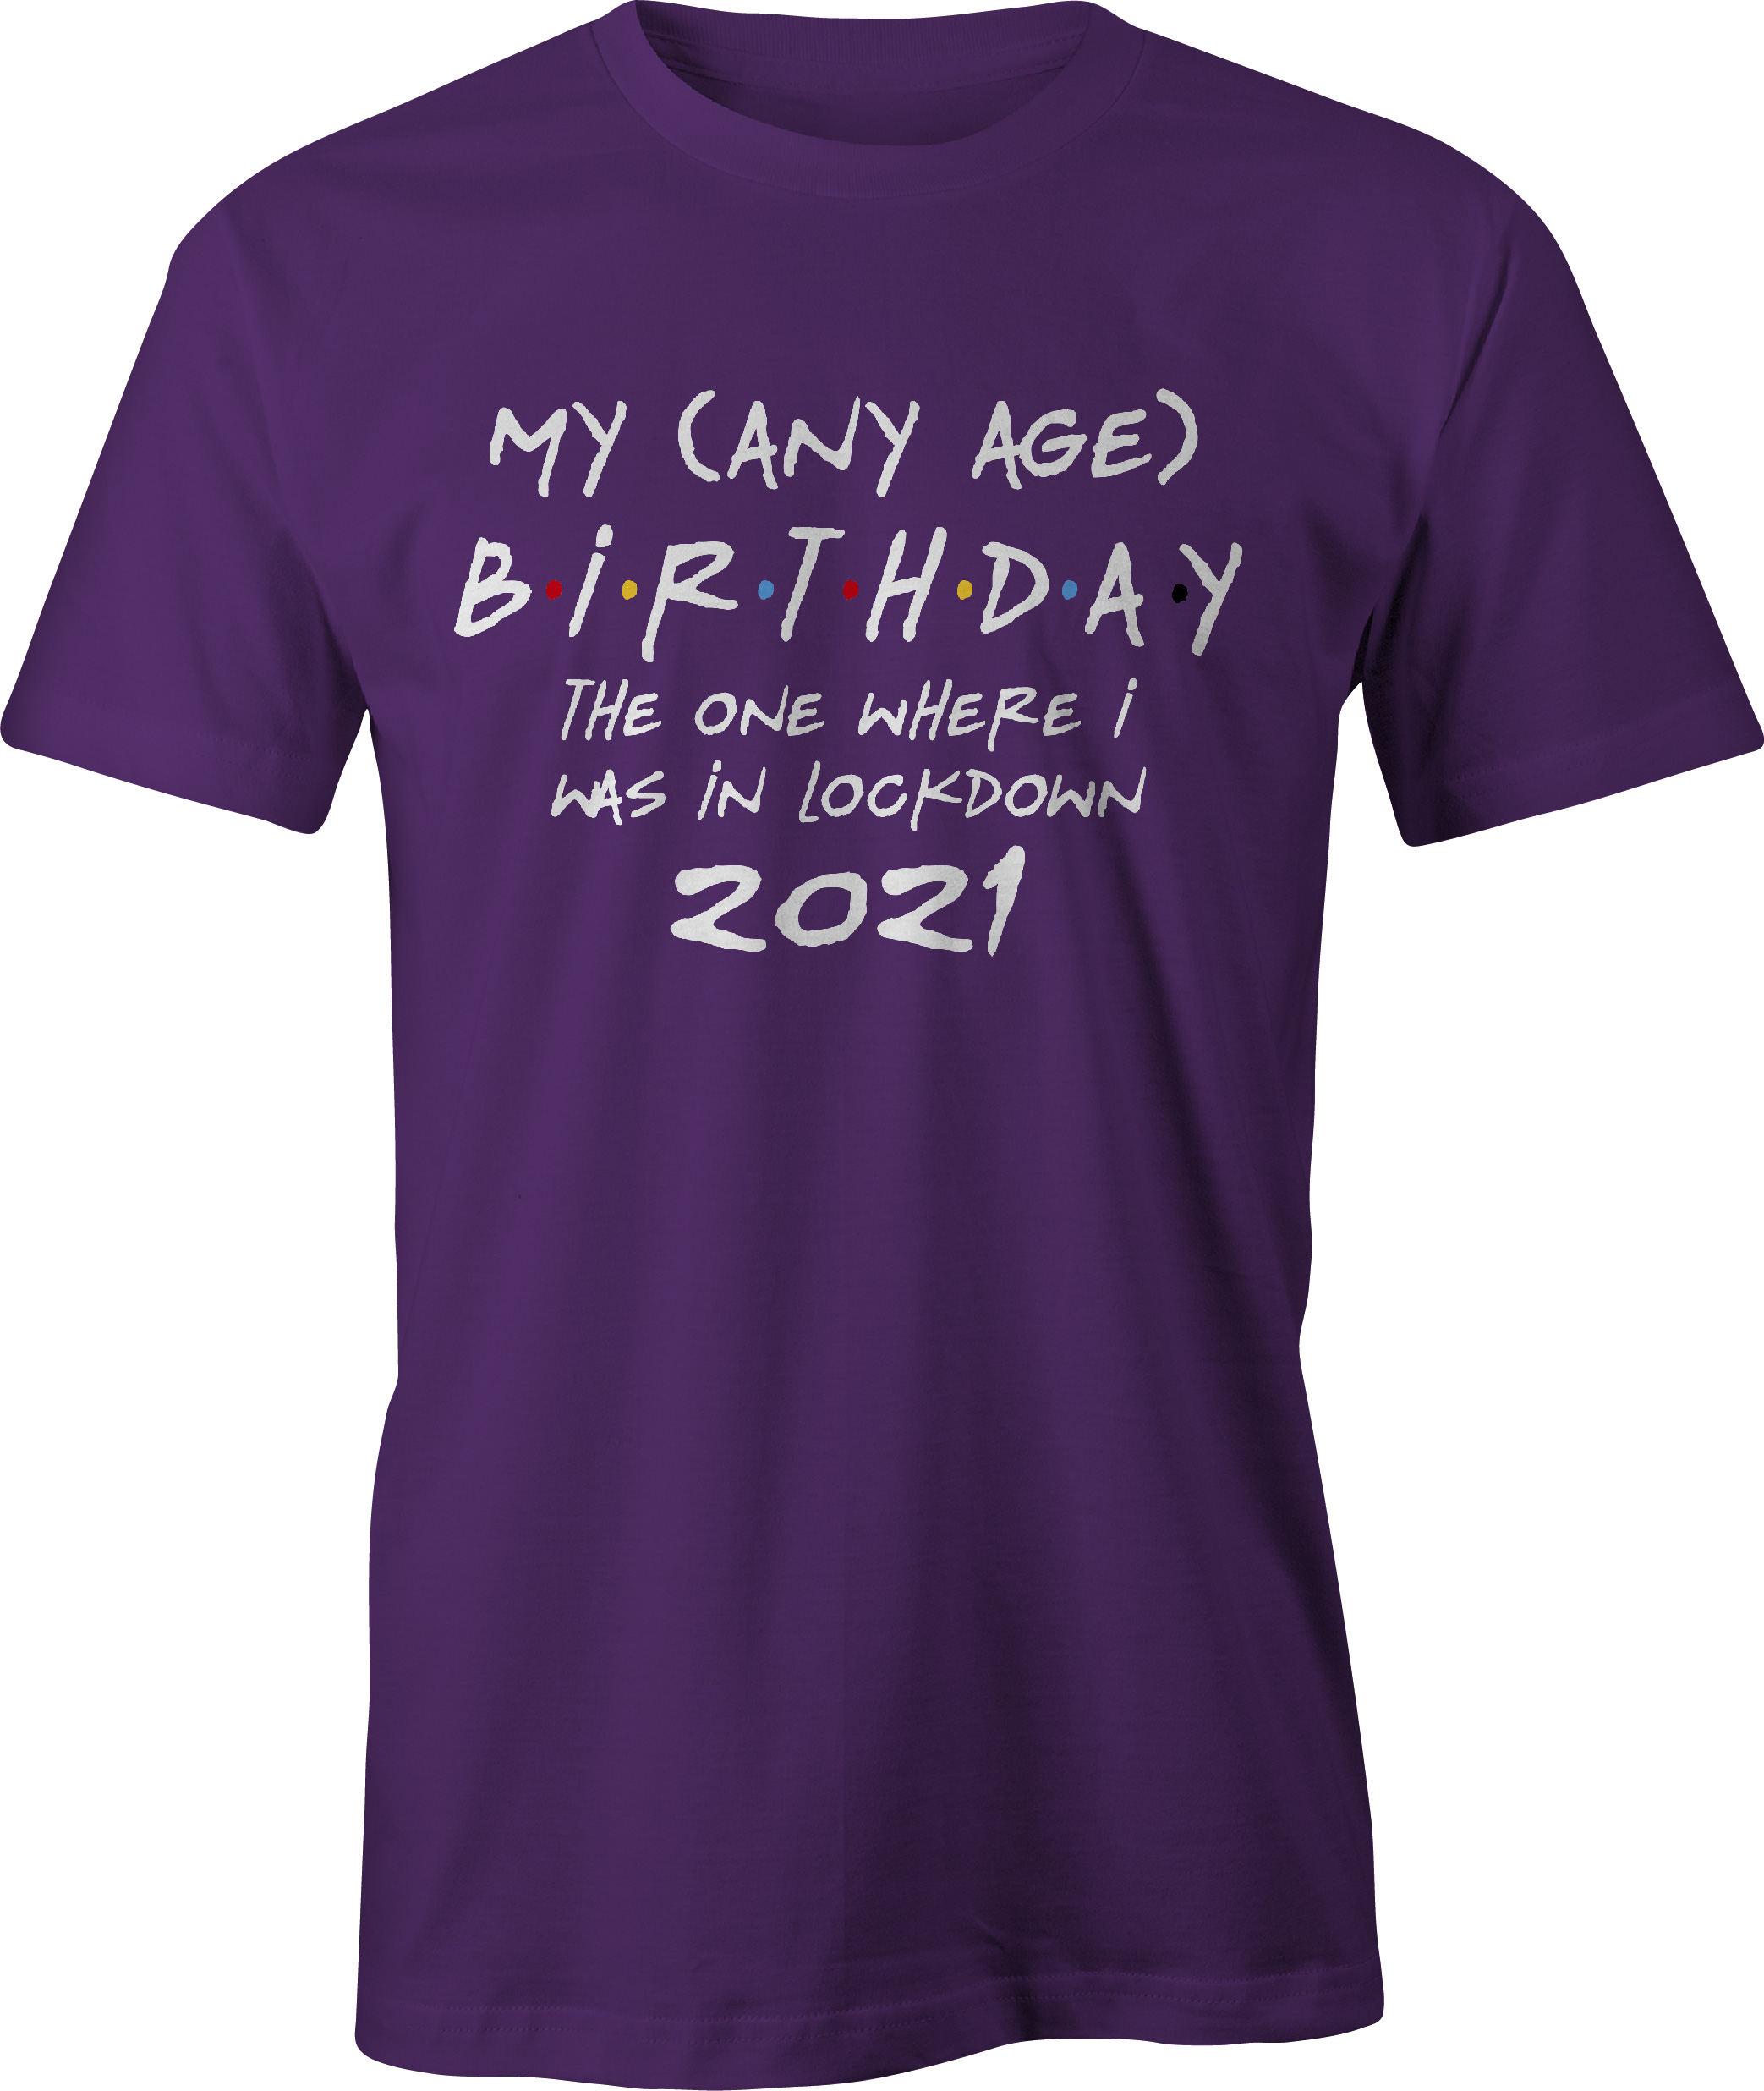 Friends style any age birthday in lockdown t shirt in purple